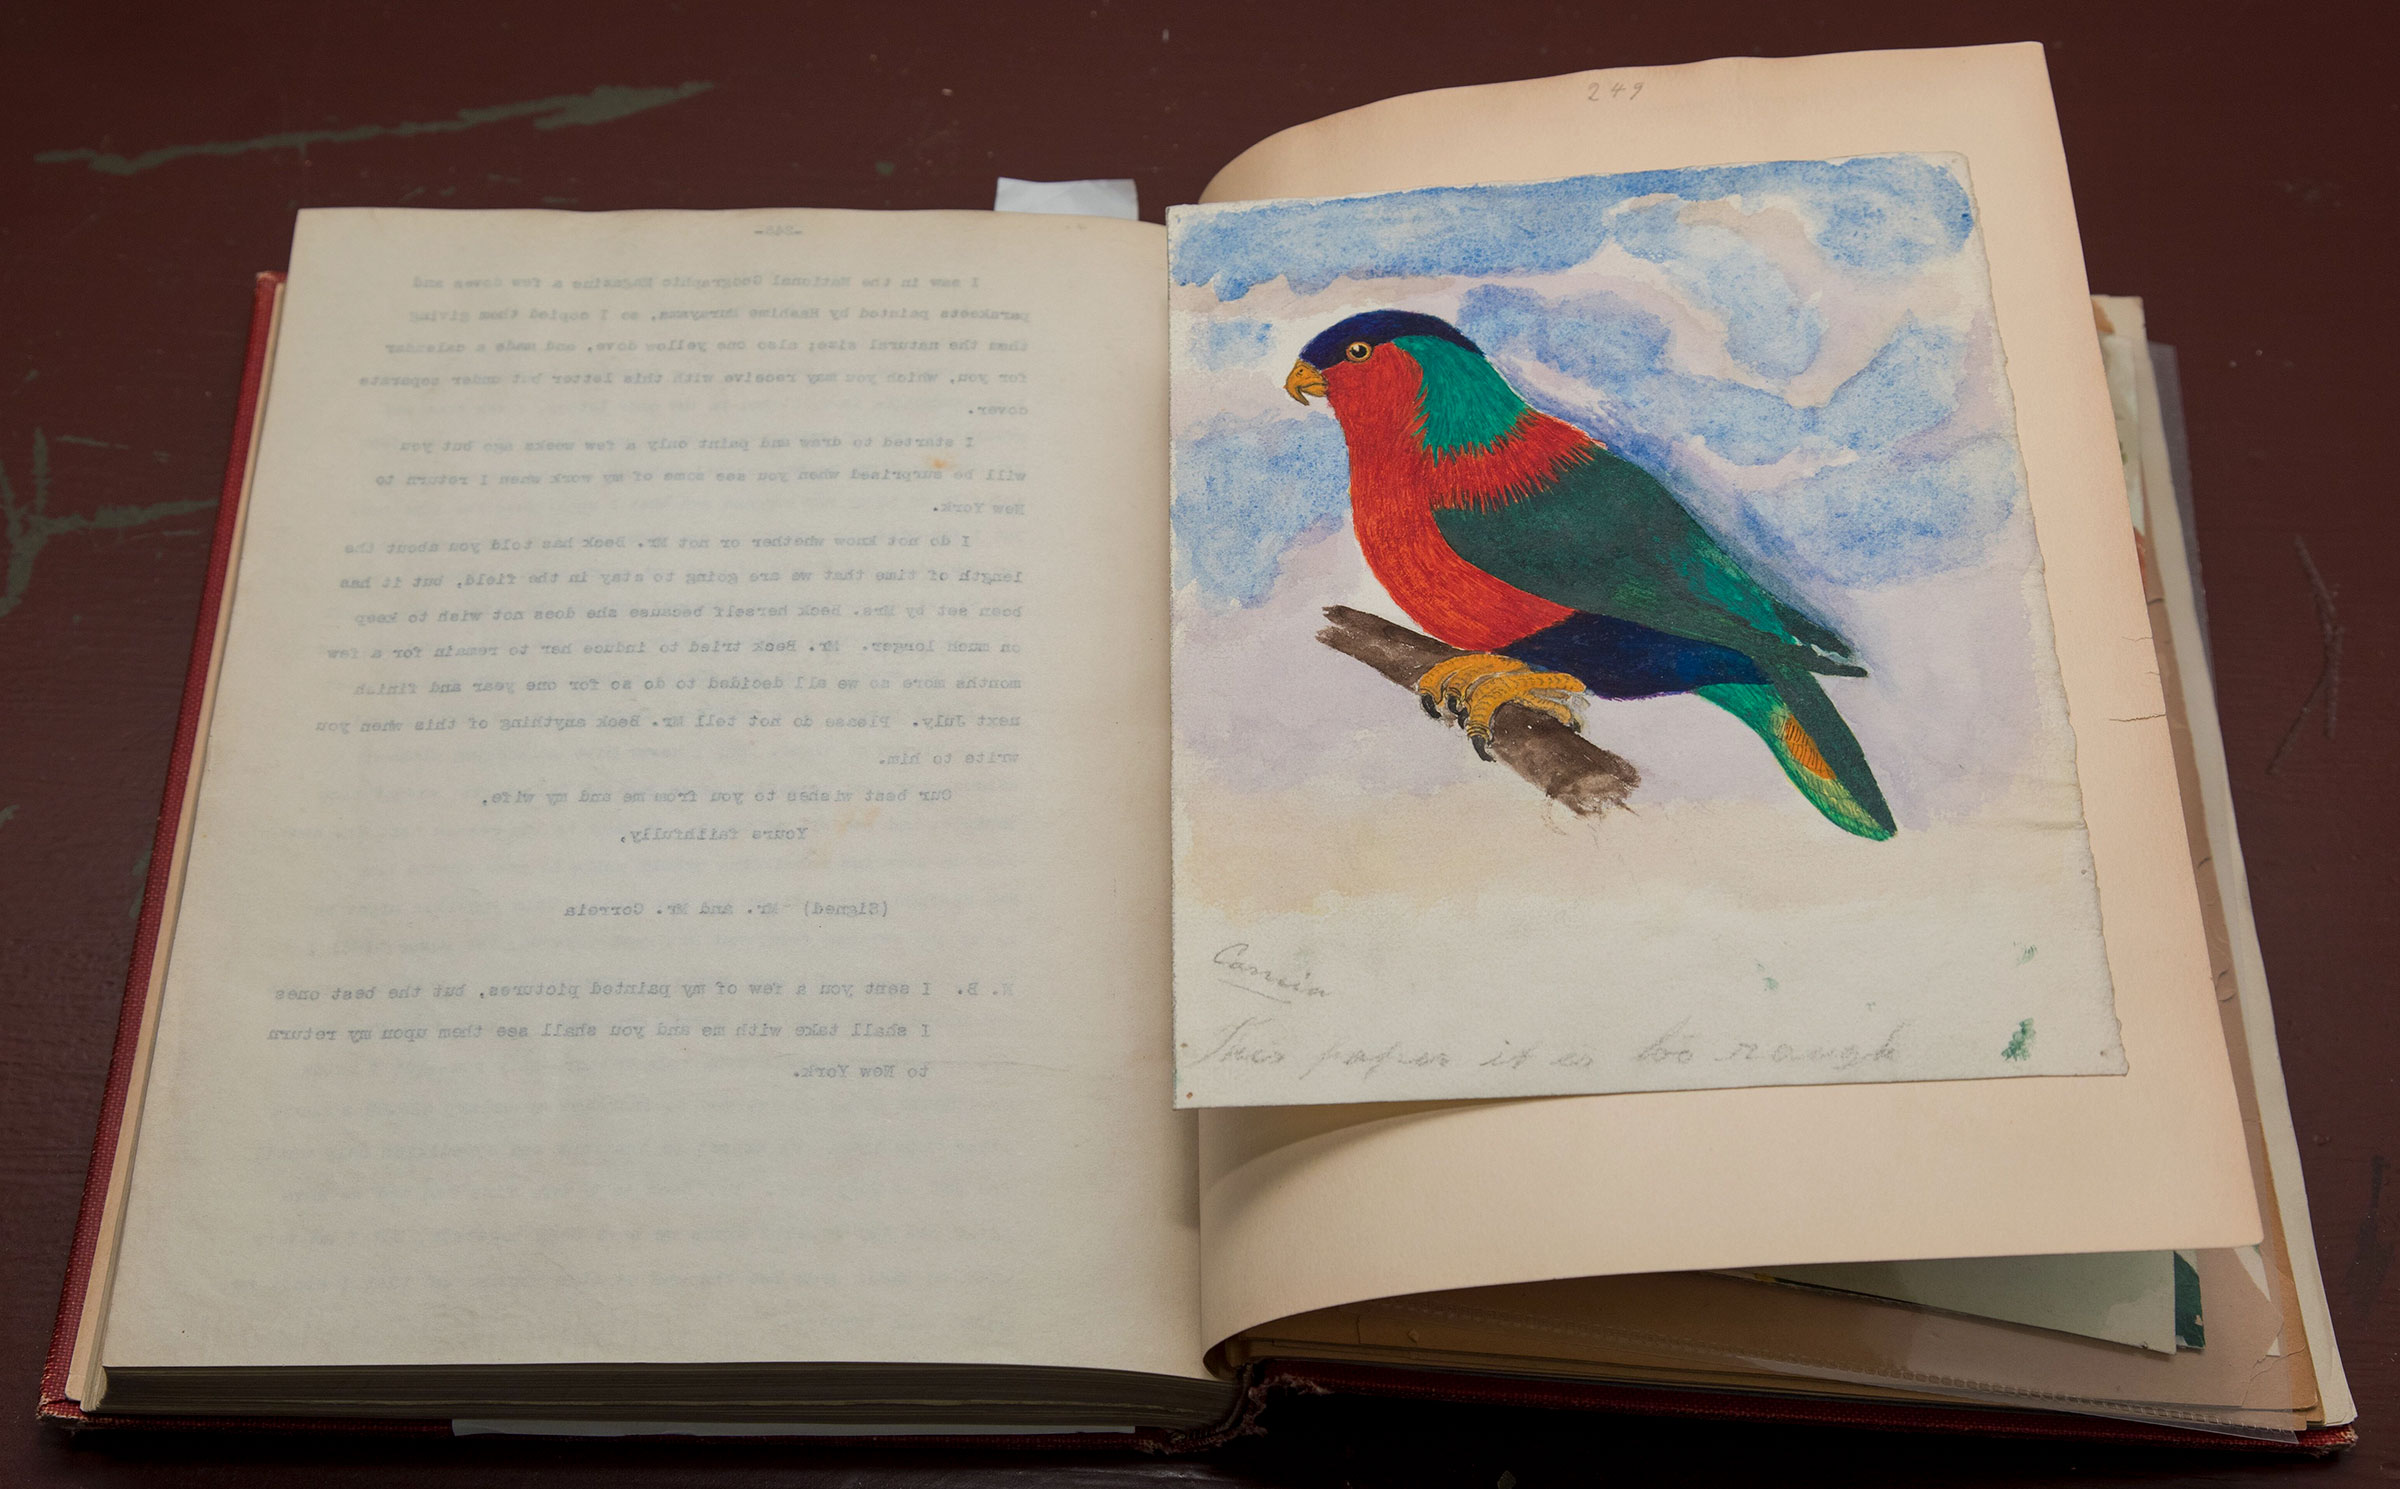 Page from ornithologist José Correia's personal journal. M. Shanley/AMNH